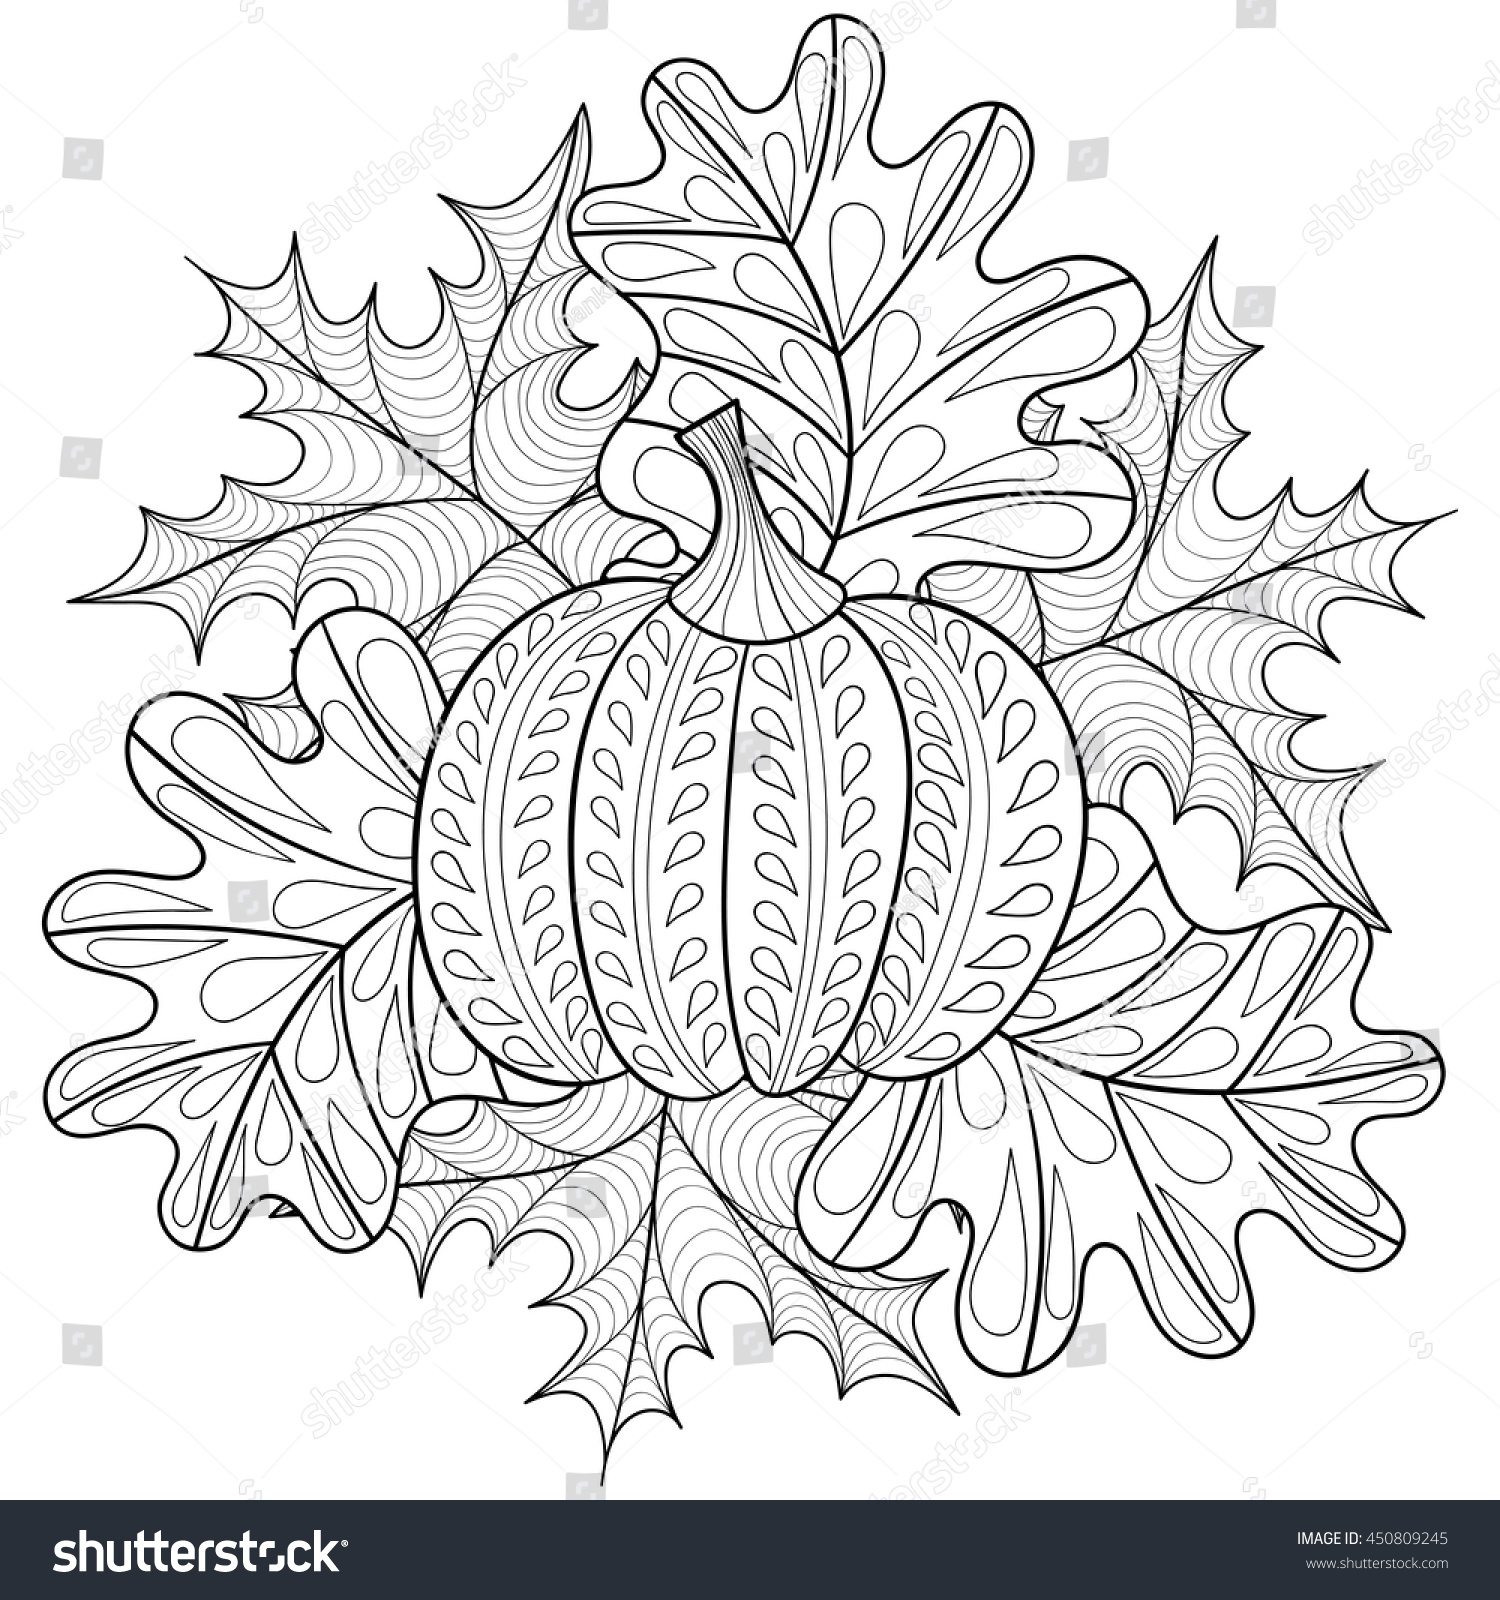 pumpkin and leaves coloring pages - photo#29